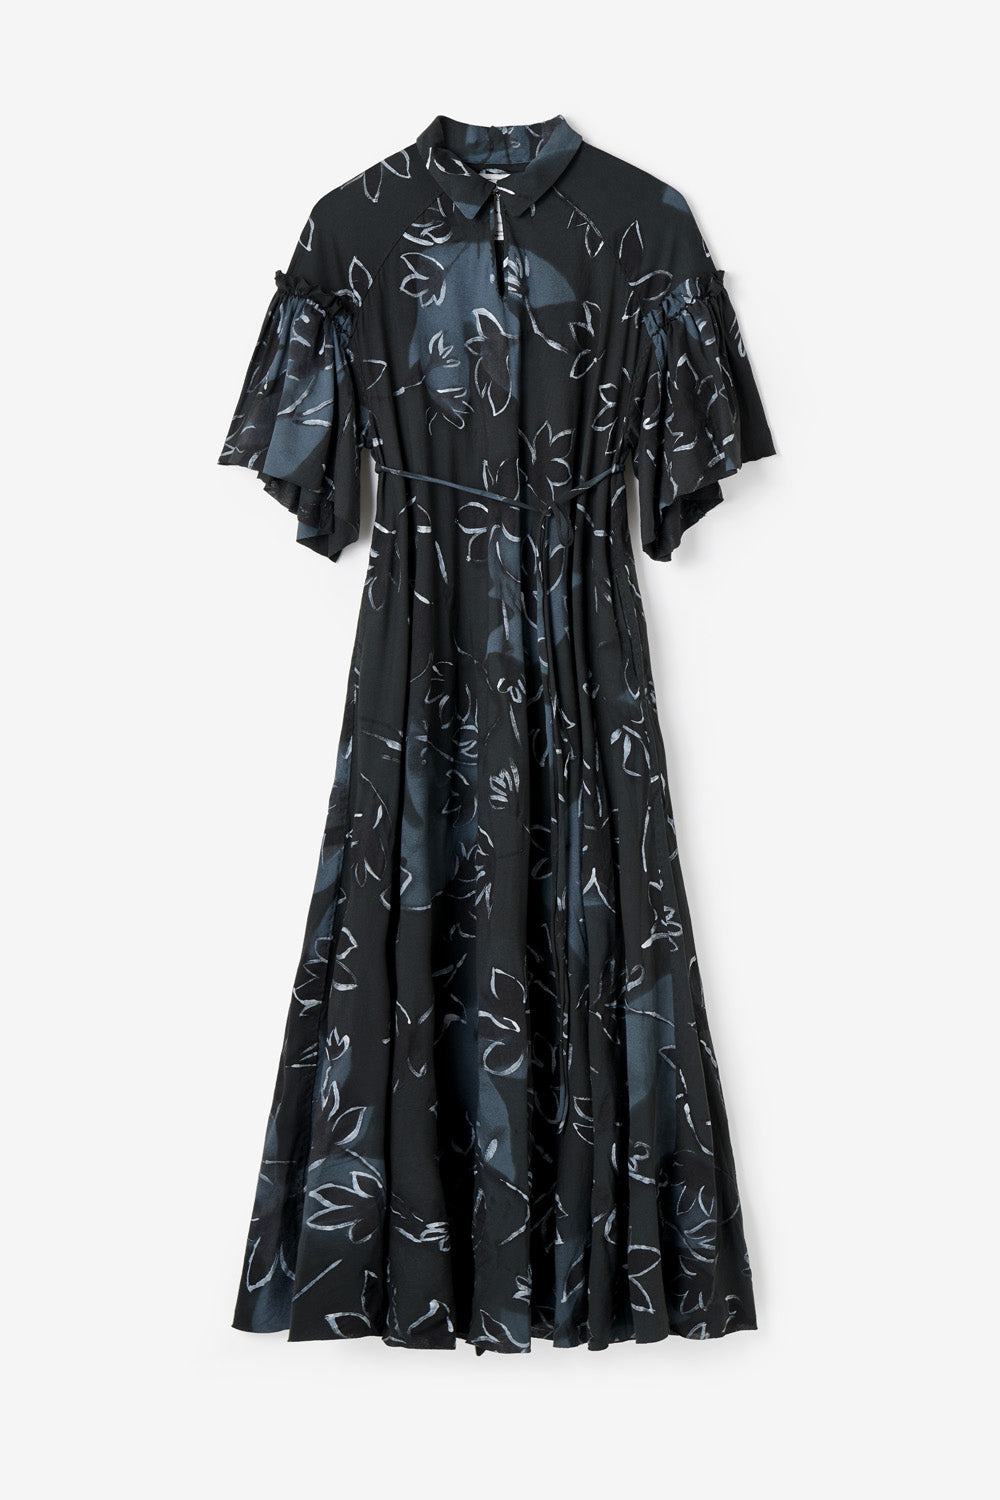 Alabama Chanin Samantha Joan Dress Women's Organic Cotton Dress with Hand-Painted Floral Print on Black